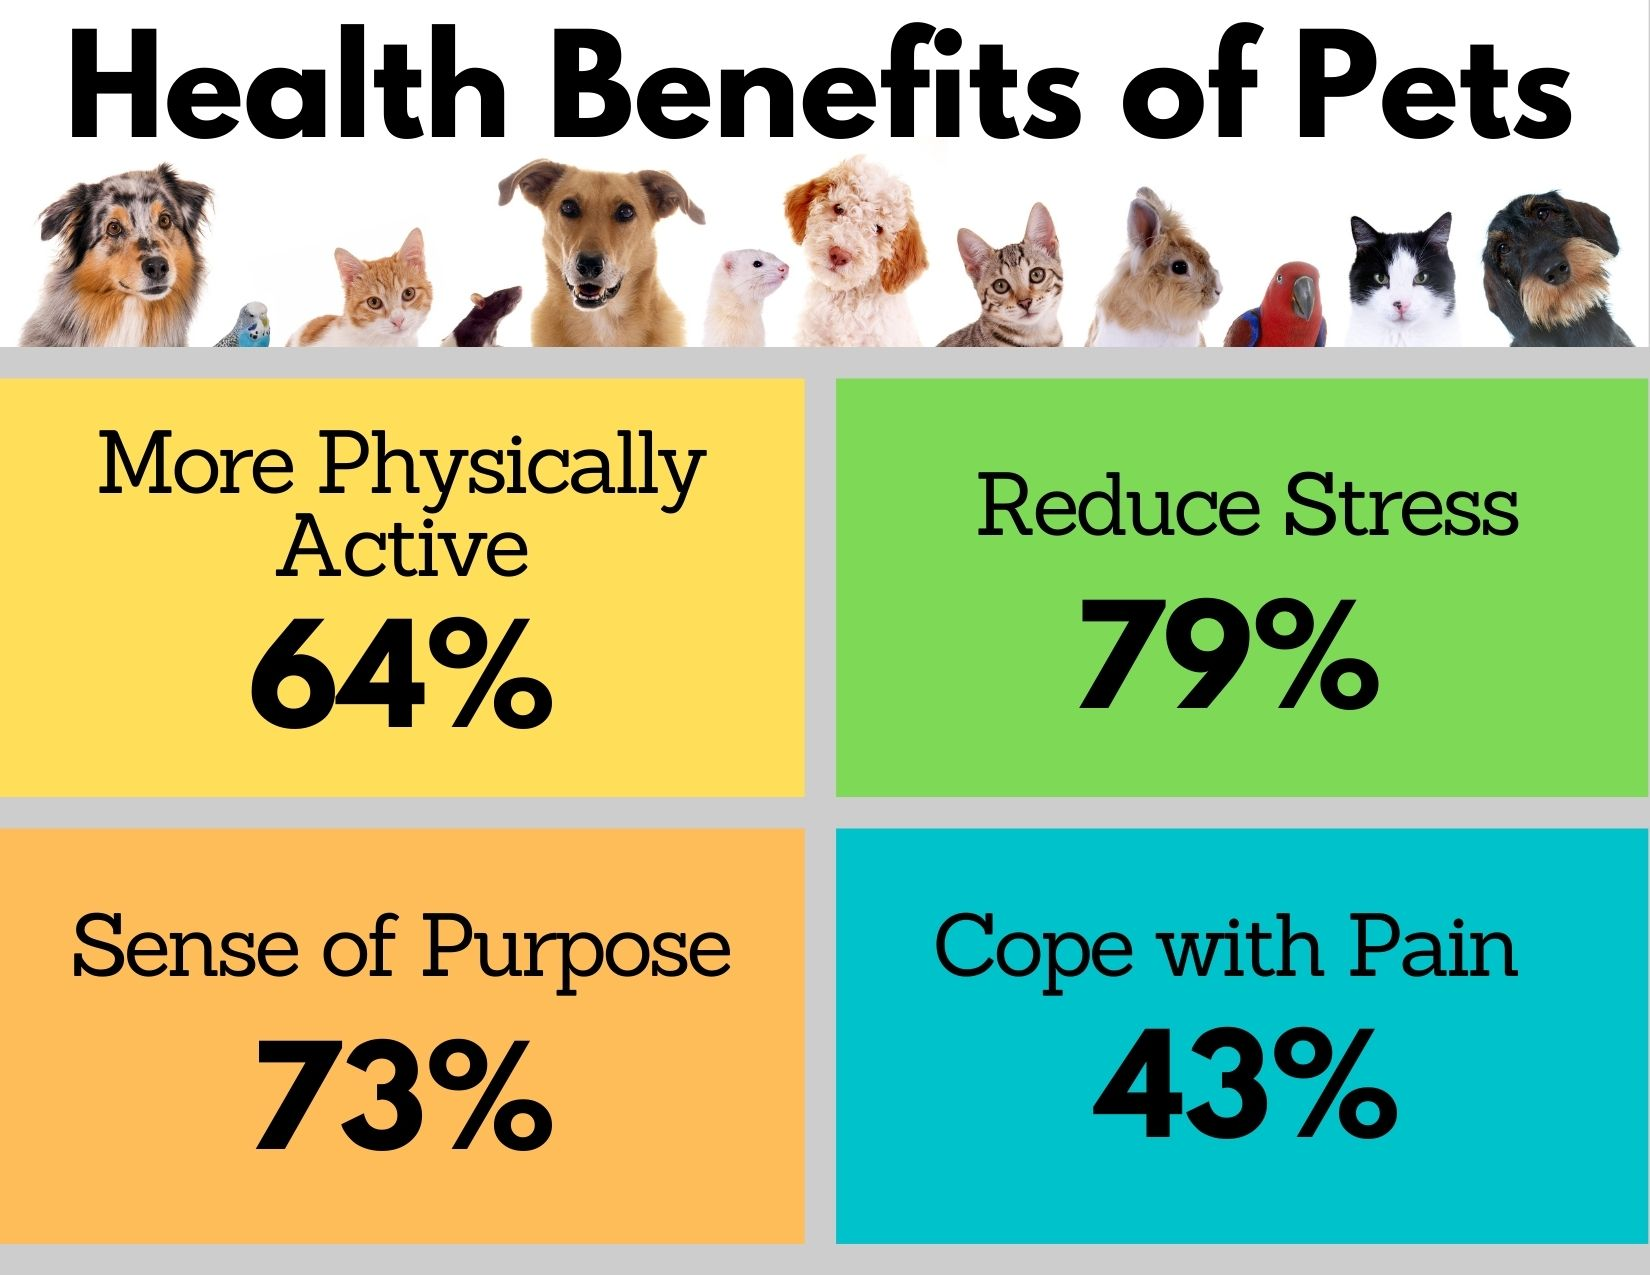 Infographic showing the health benefits of Seniors owning pets